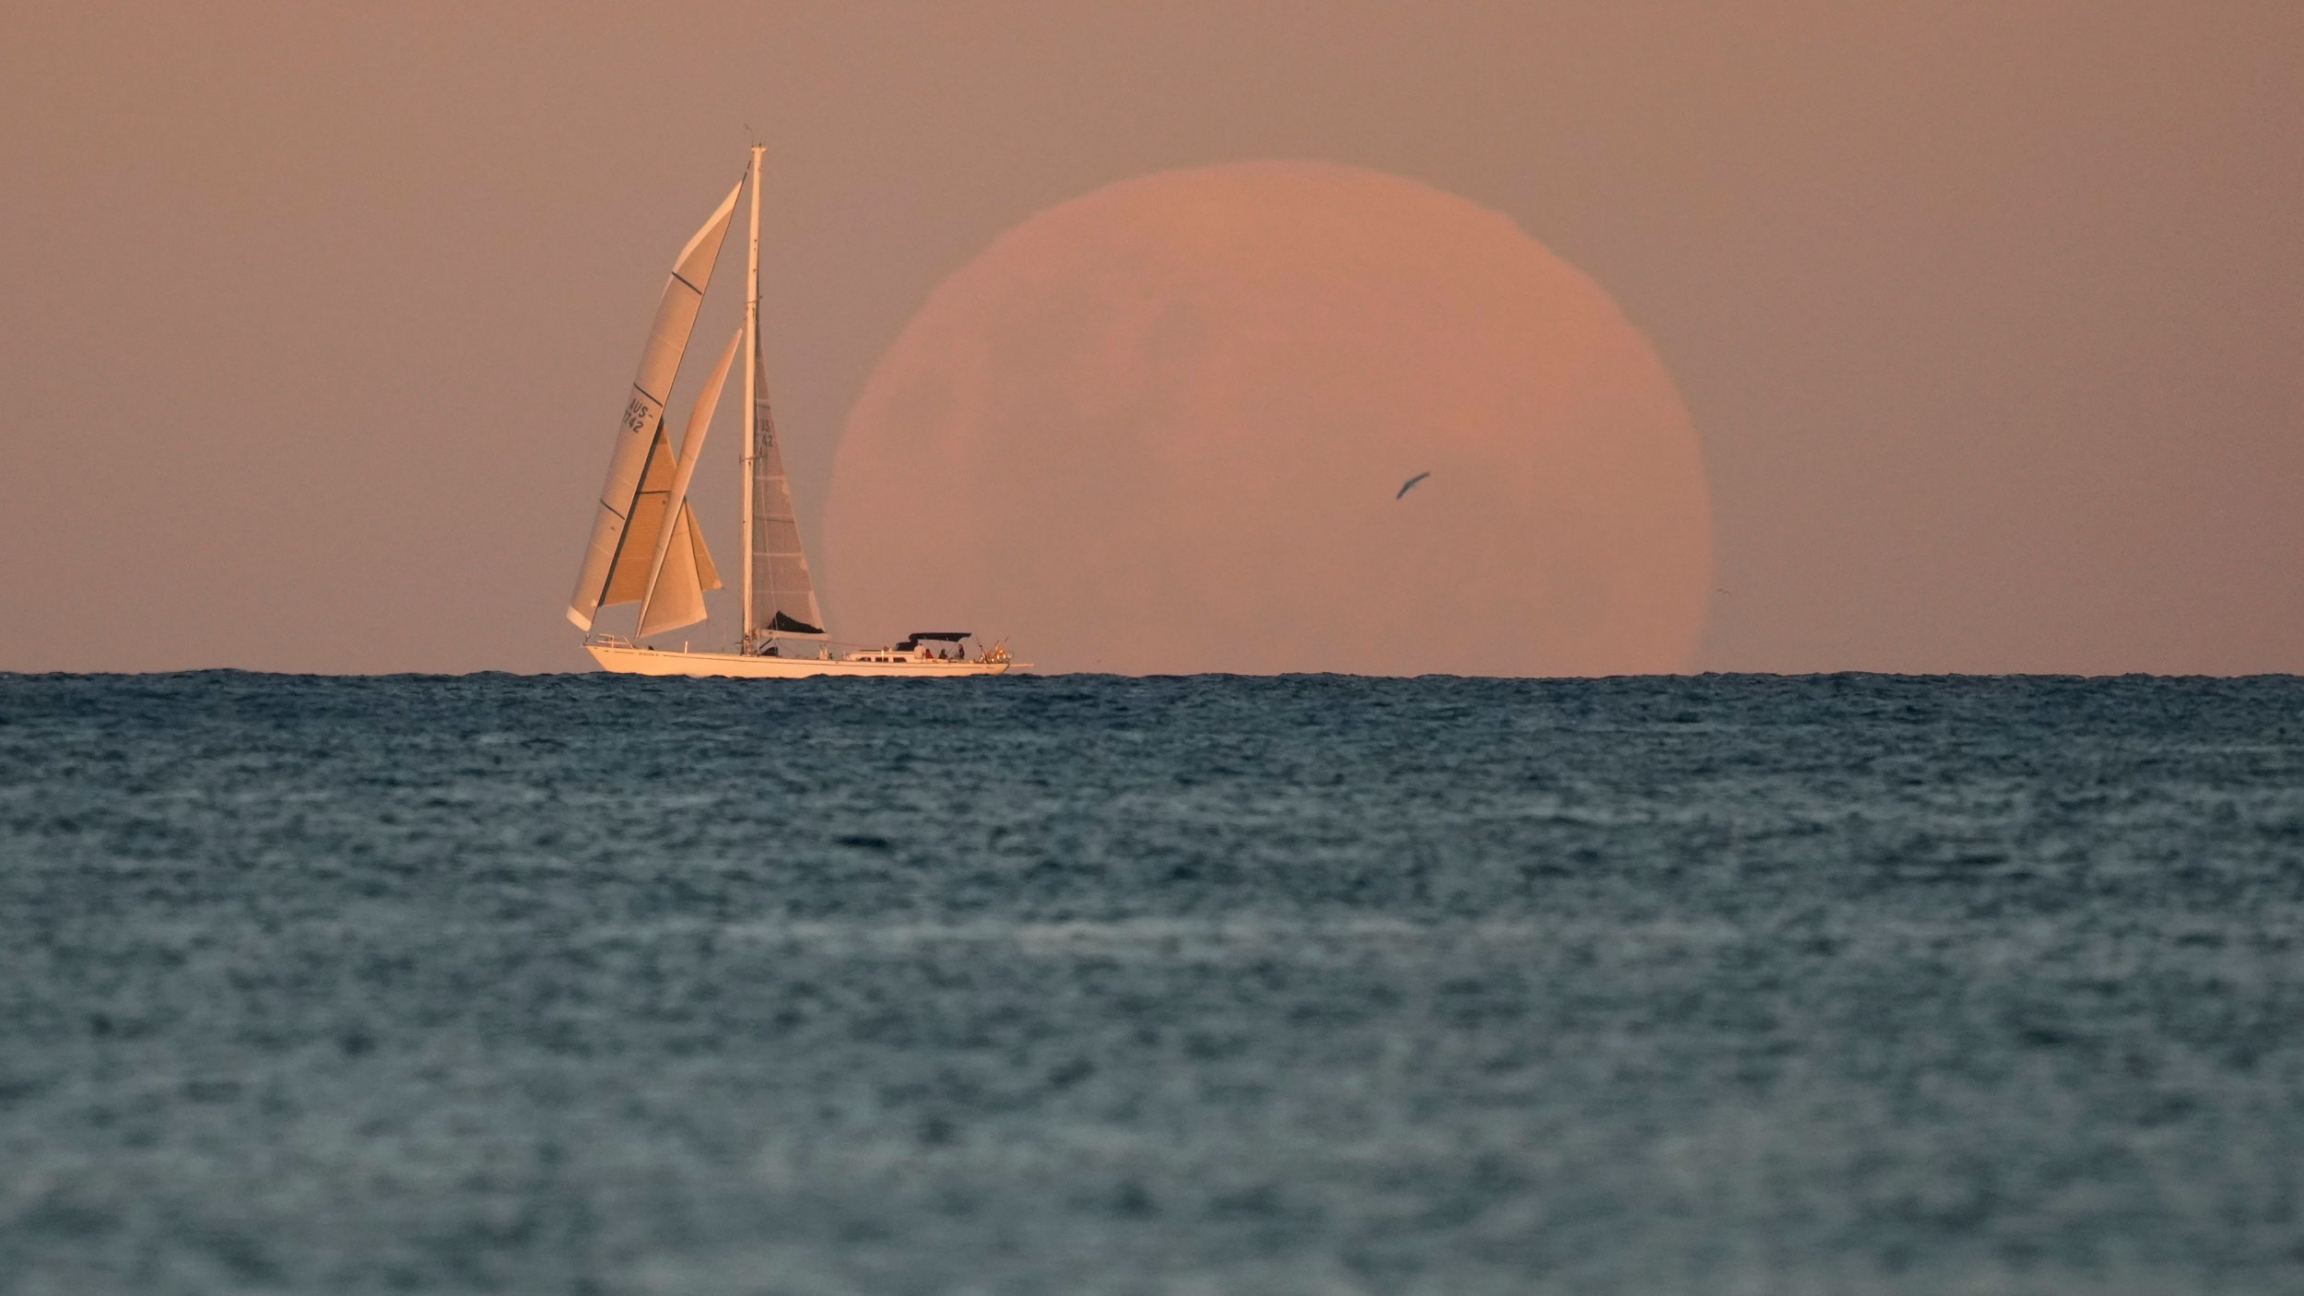 A boat with its sails up is shown at the horizon line during golden hour as a large orange moon is shown behind it.